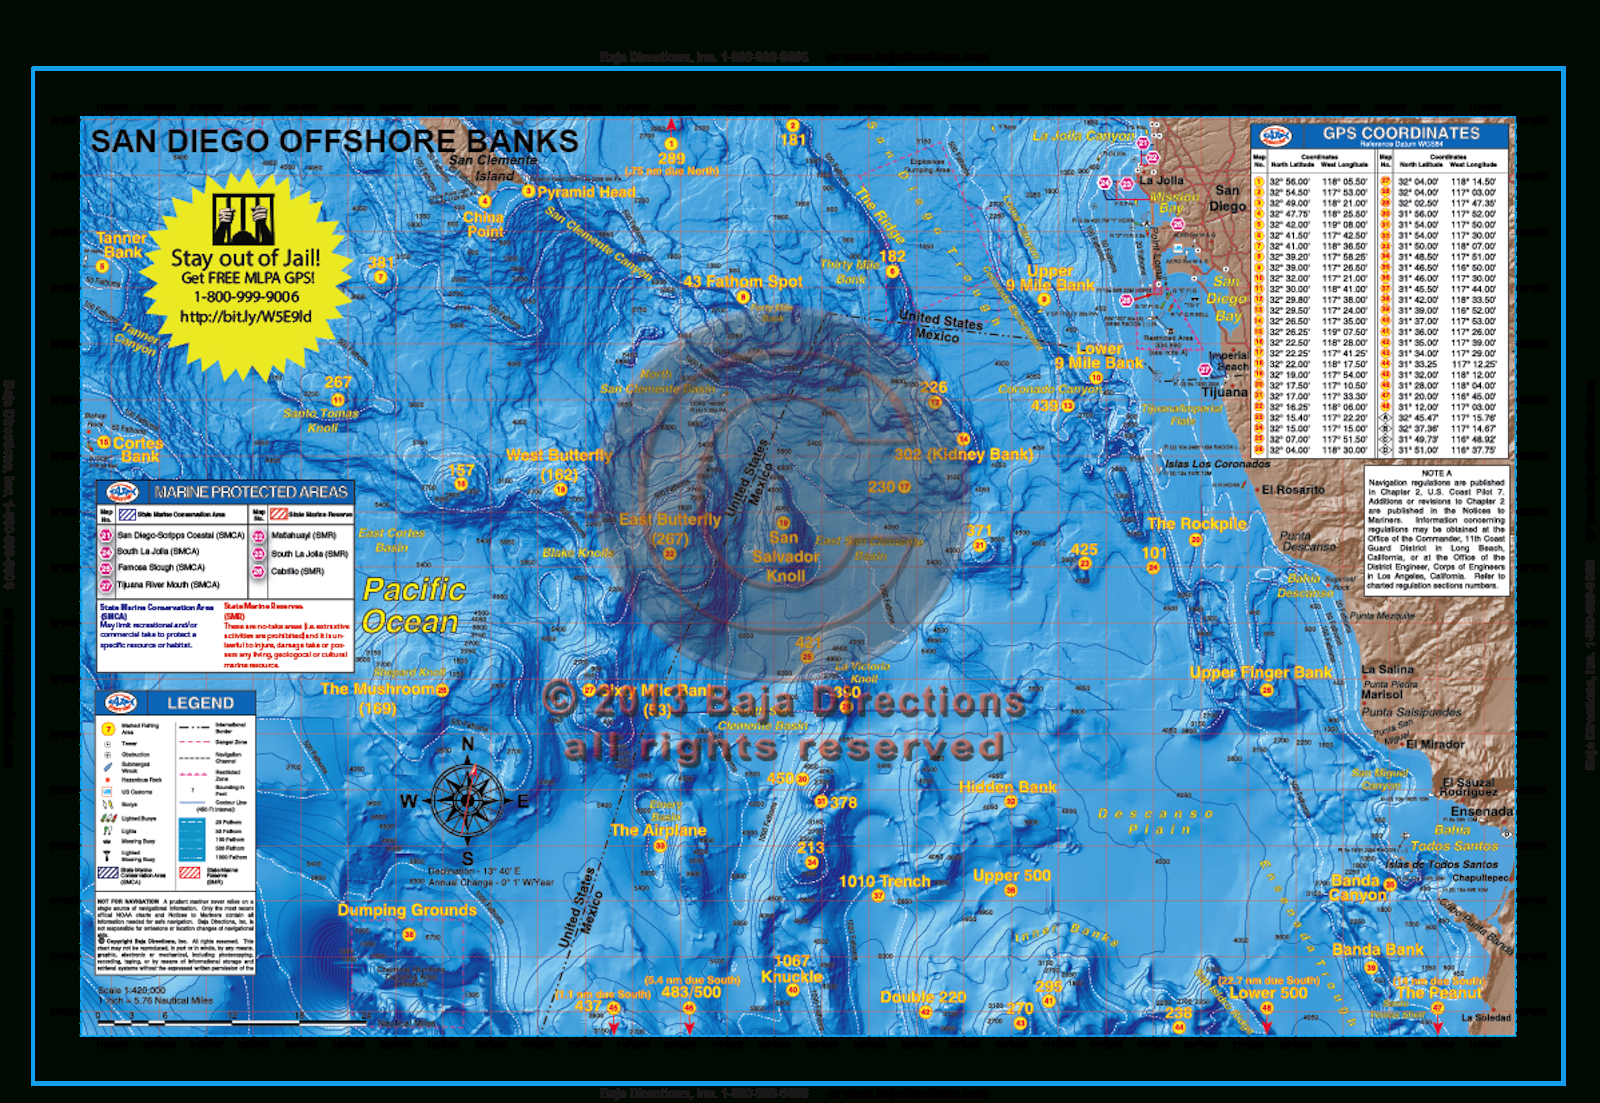 San Diego Offshore Banks - Baja Directions - California Fishing Map